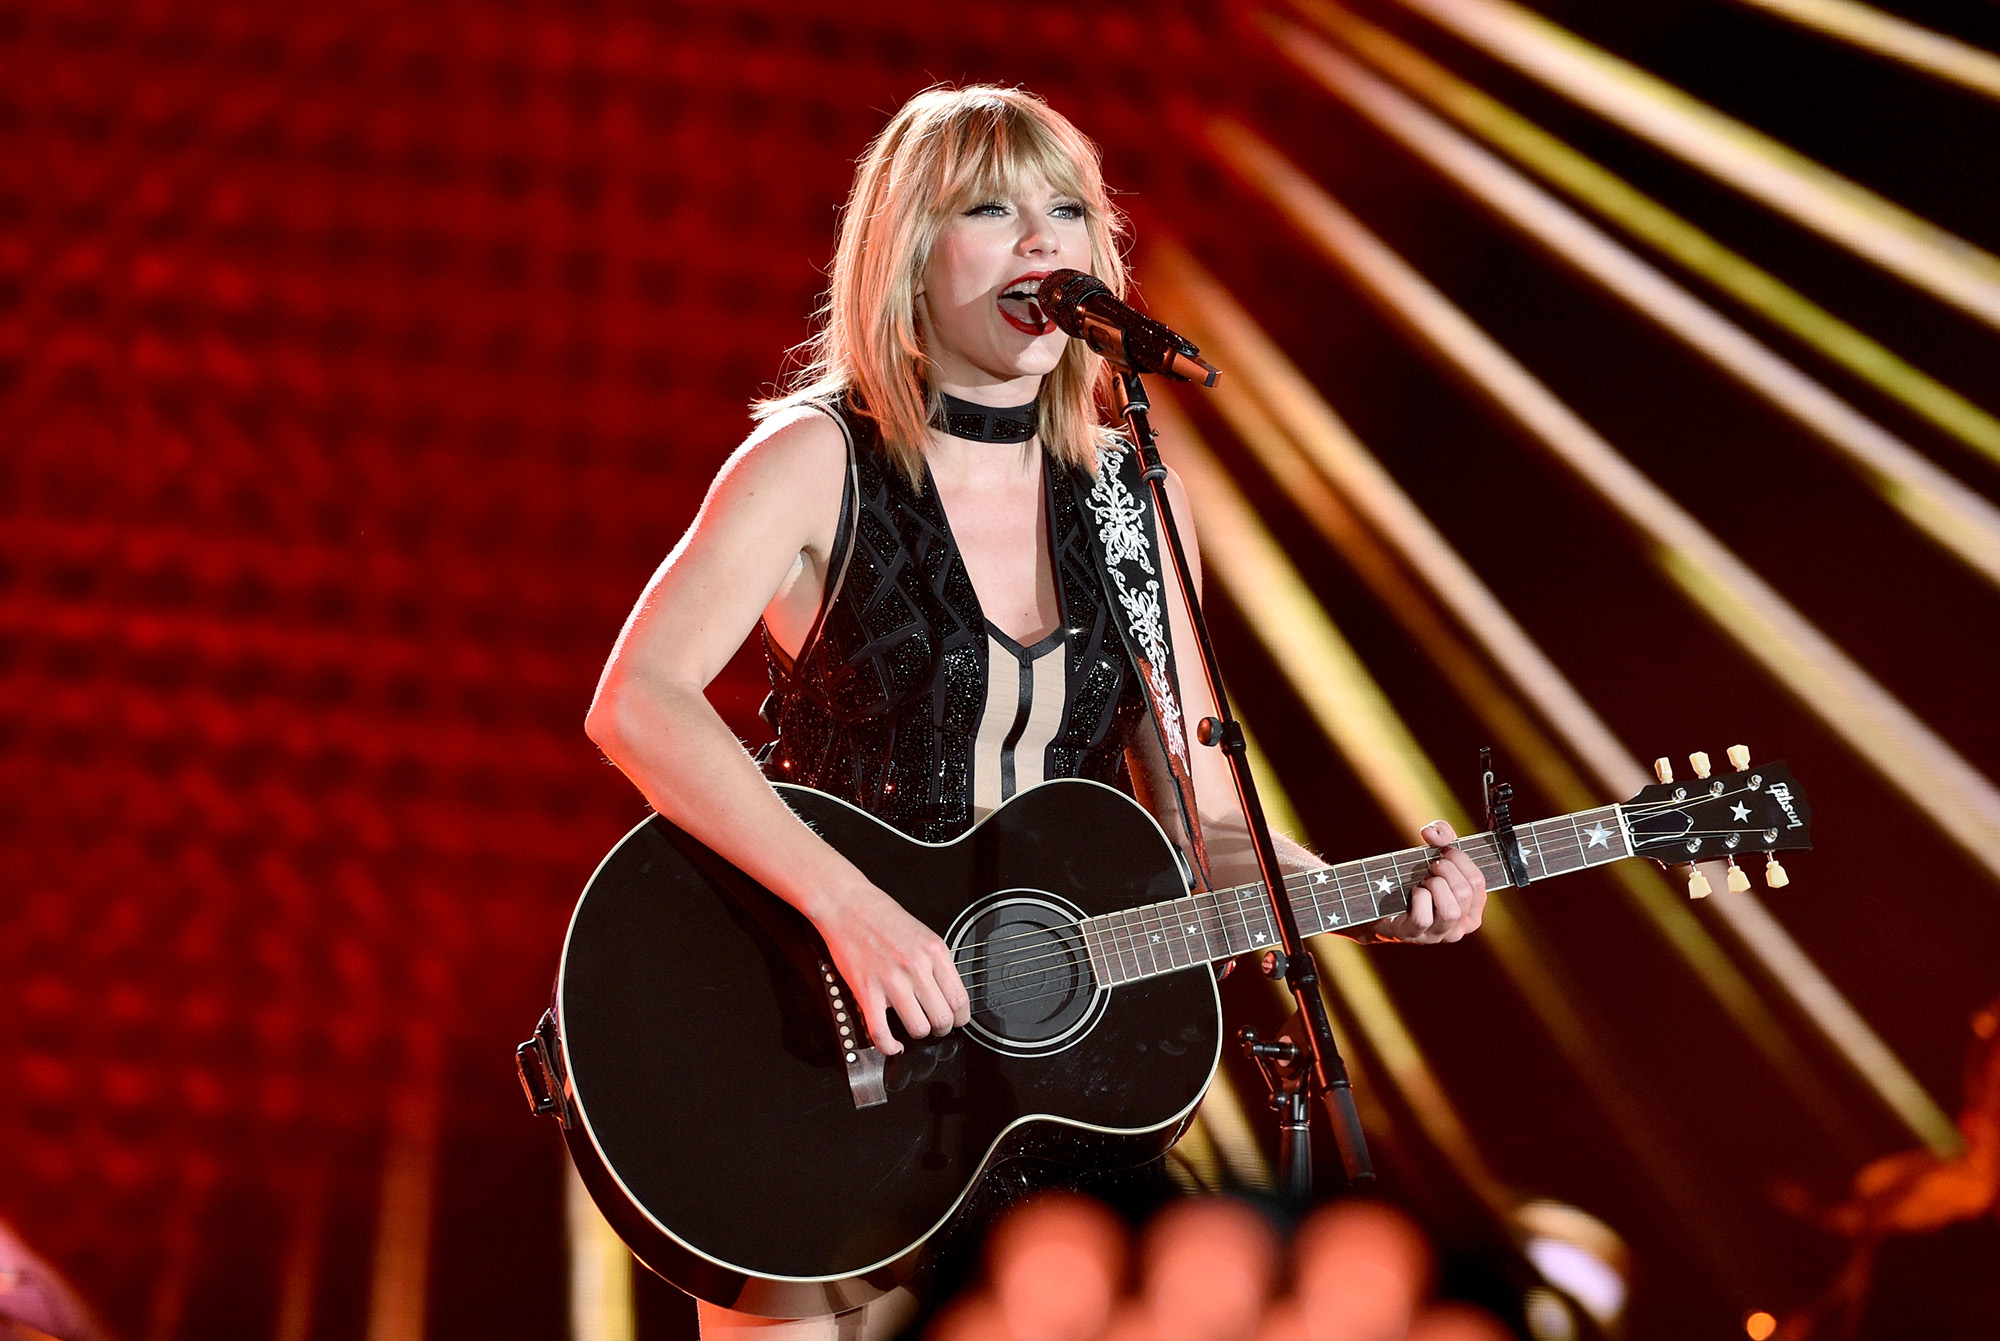 Taylor Swift Says Tom Petty Made Her Want To Play Guitar Time